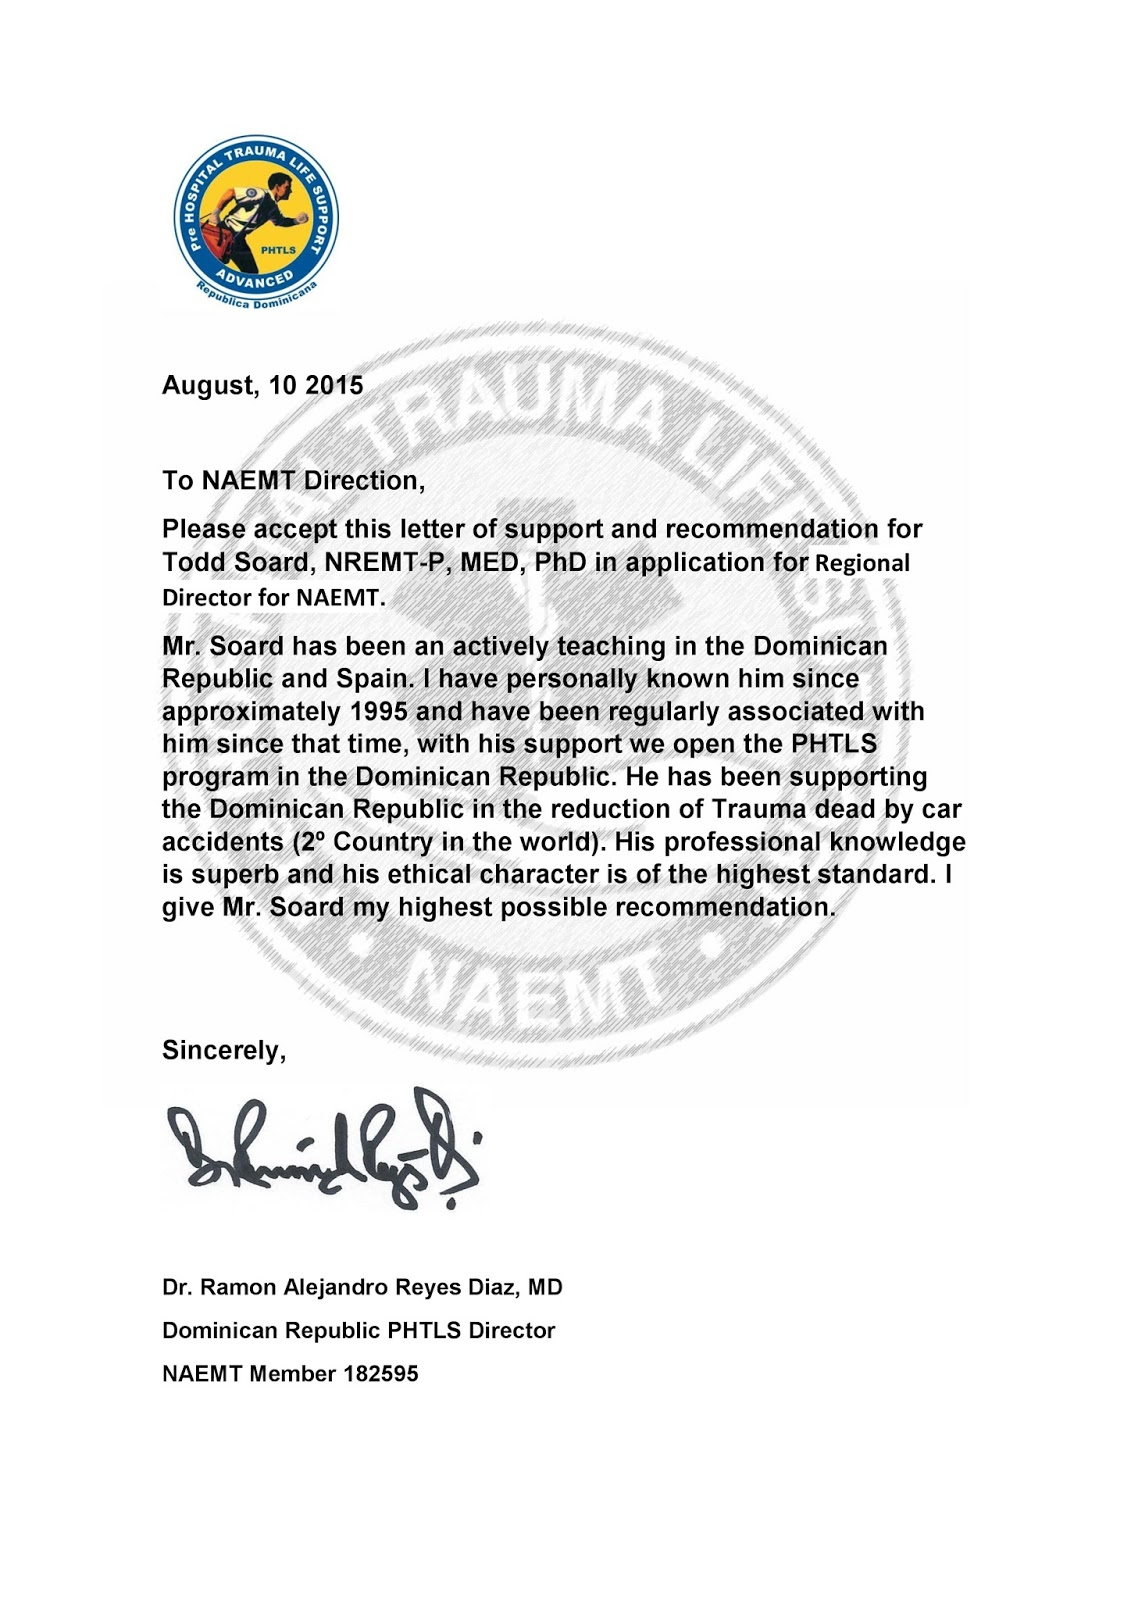 Paramedic S Letter To Burger Flippers